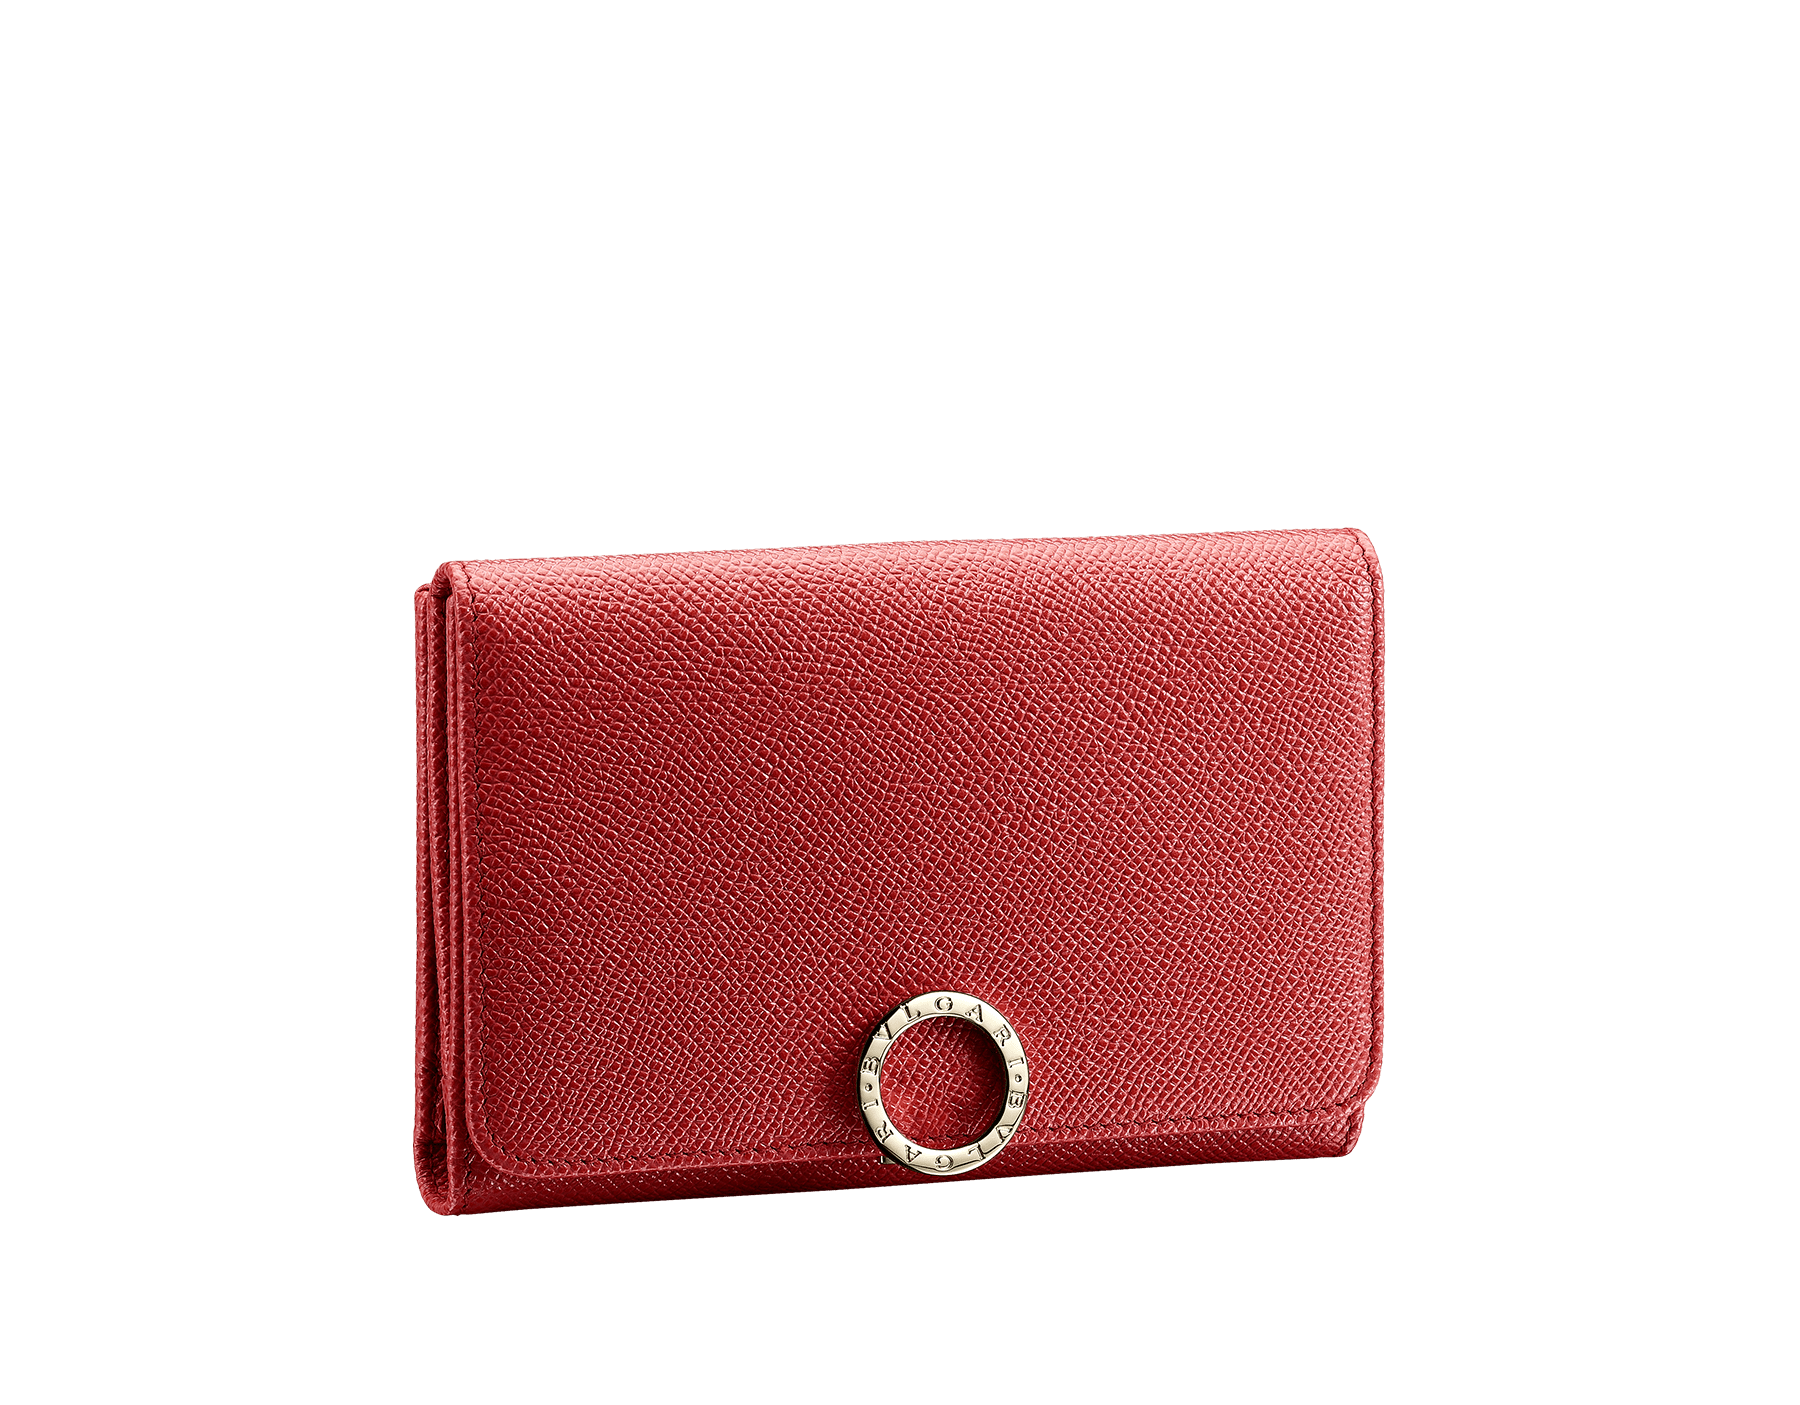 Compact pochette in ruby red bright grain calf leather, desert quartz nappa and fuxia nappa lining. Brass light gold plated hardware and iconic BVLGARI BVLGARI closure clip. 281454 image 1